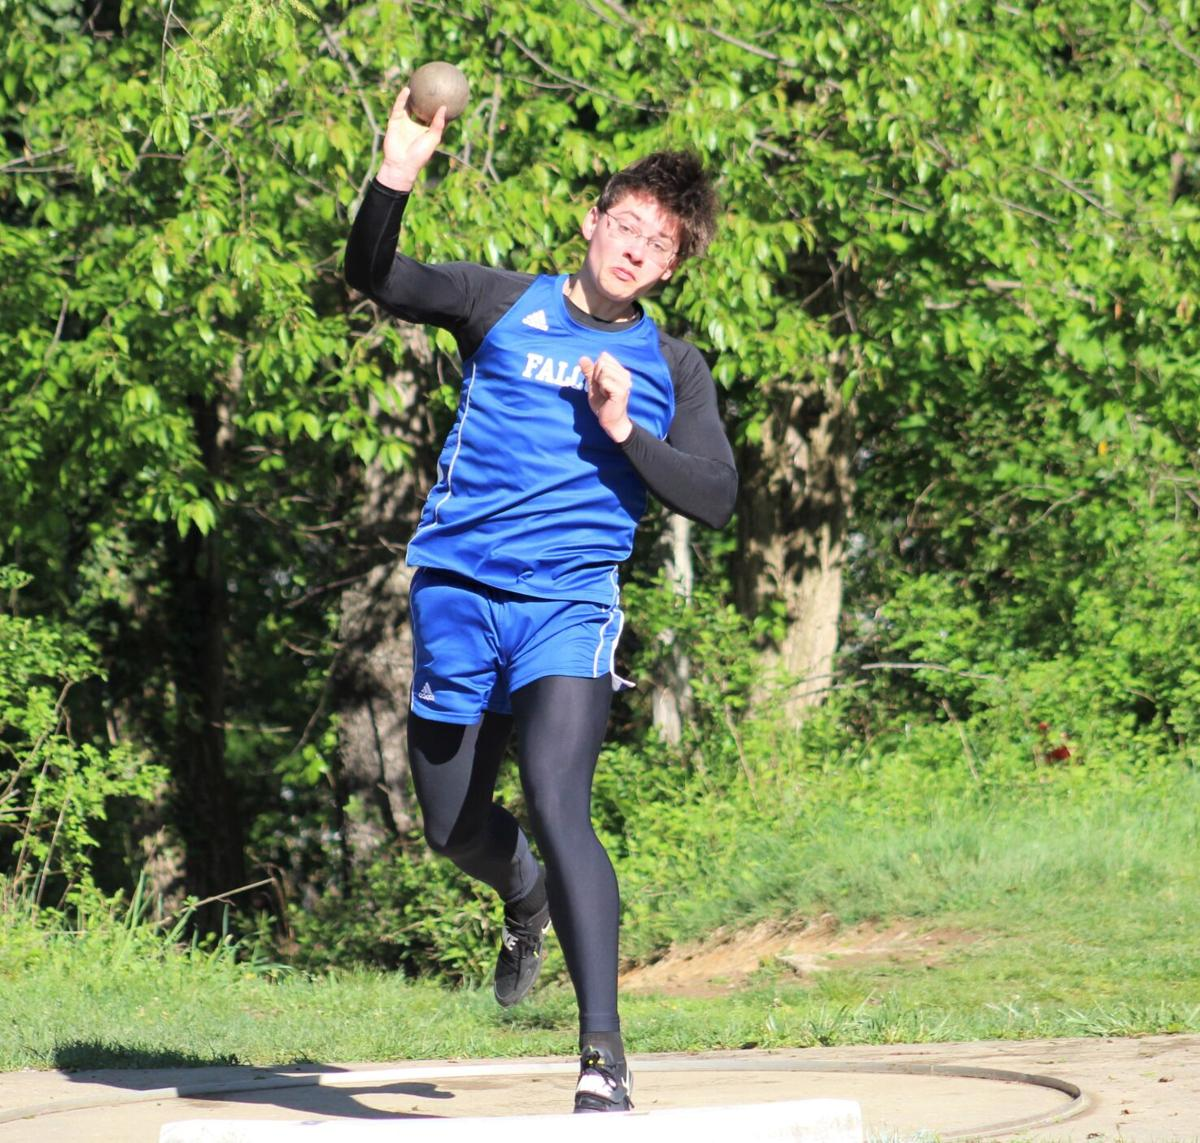 Reese releases the shot put